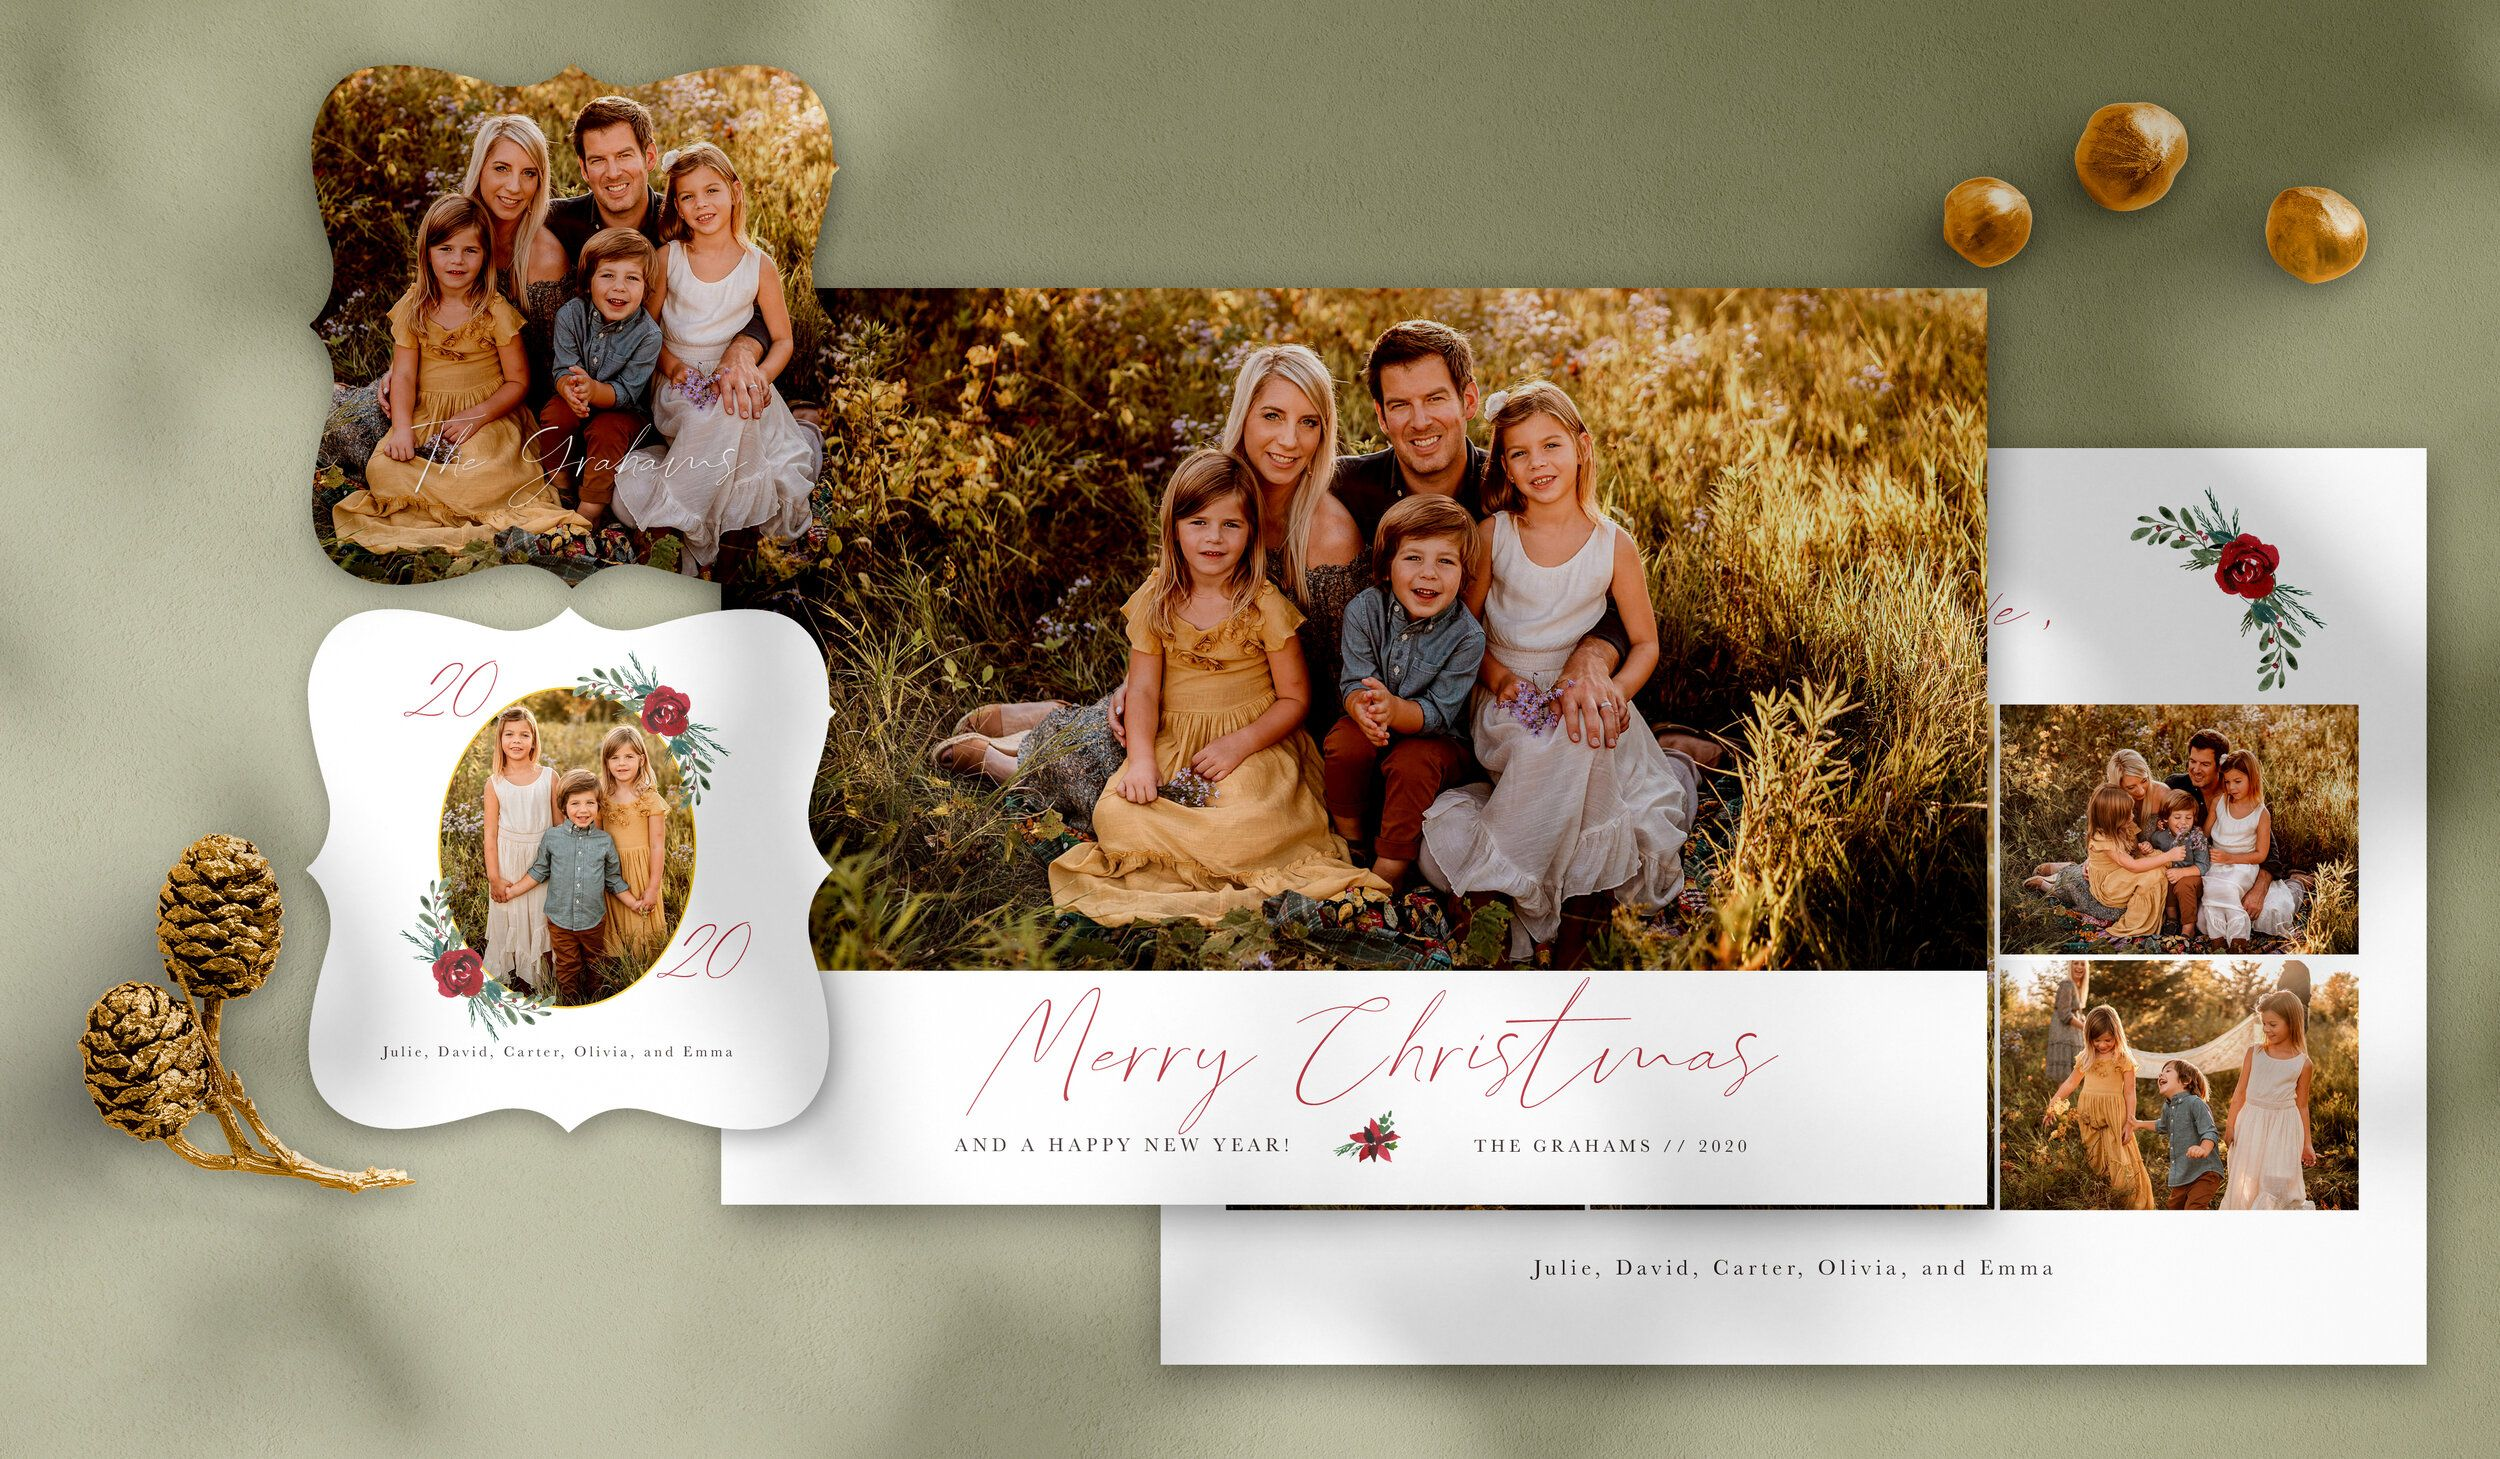 Merry Christmas Photo Card Template Free Matching 3x3 Ornate Ornament By Stephanie Design Merry Christmas Card Photo Christmas Photo Card Template Christmas Photo Cards